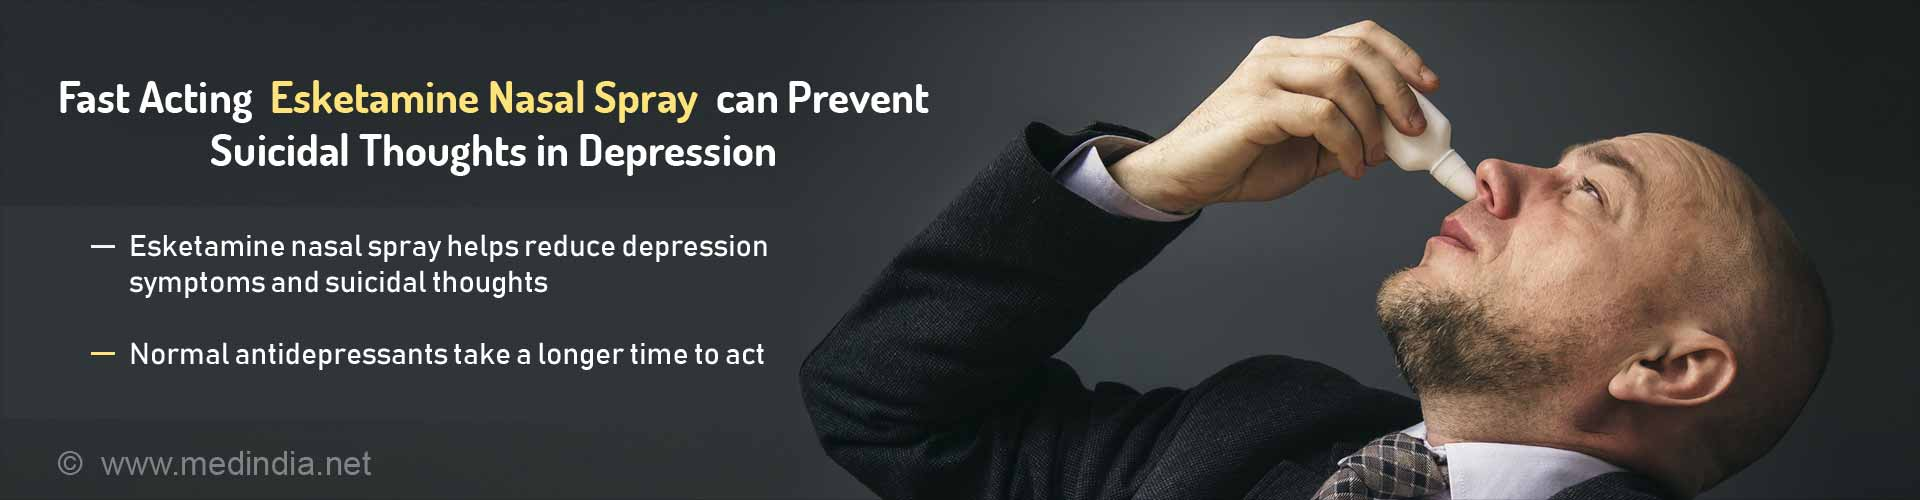 fast acting esketamine nasal spray can prevent suicidal thoughts in depression